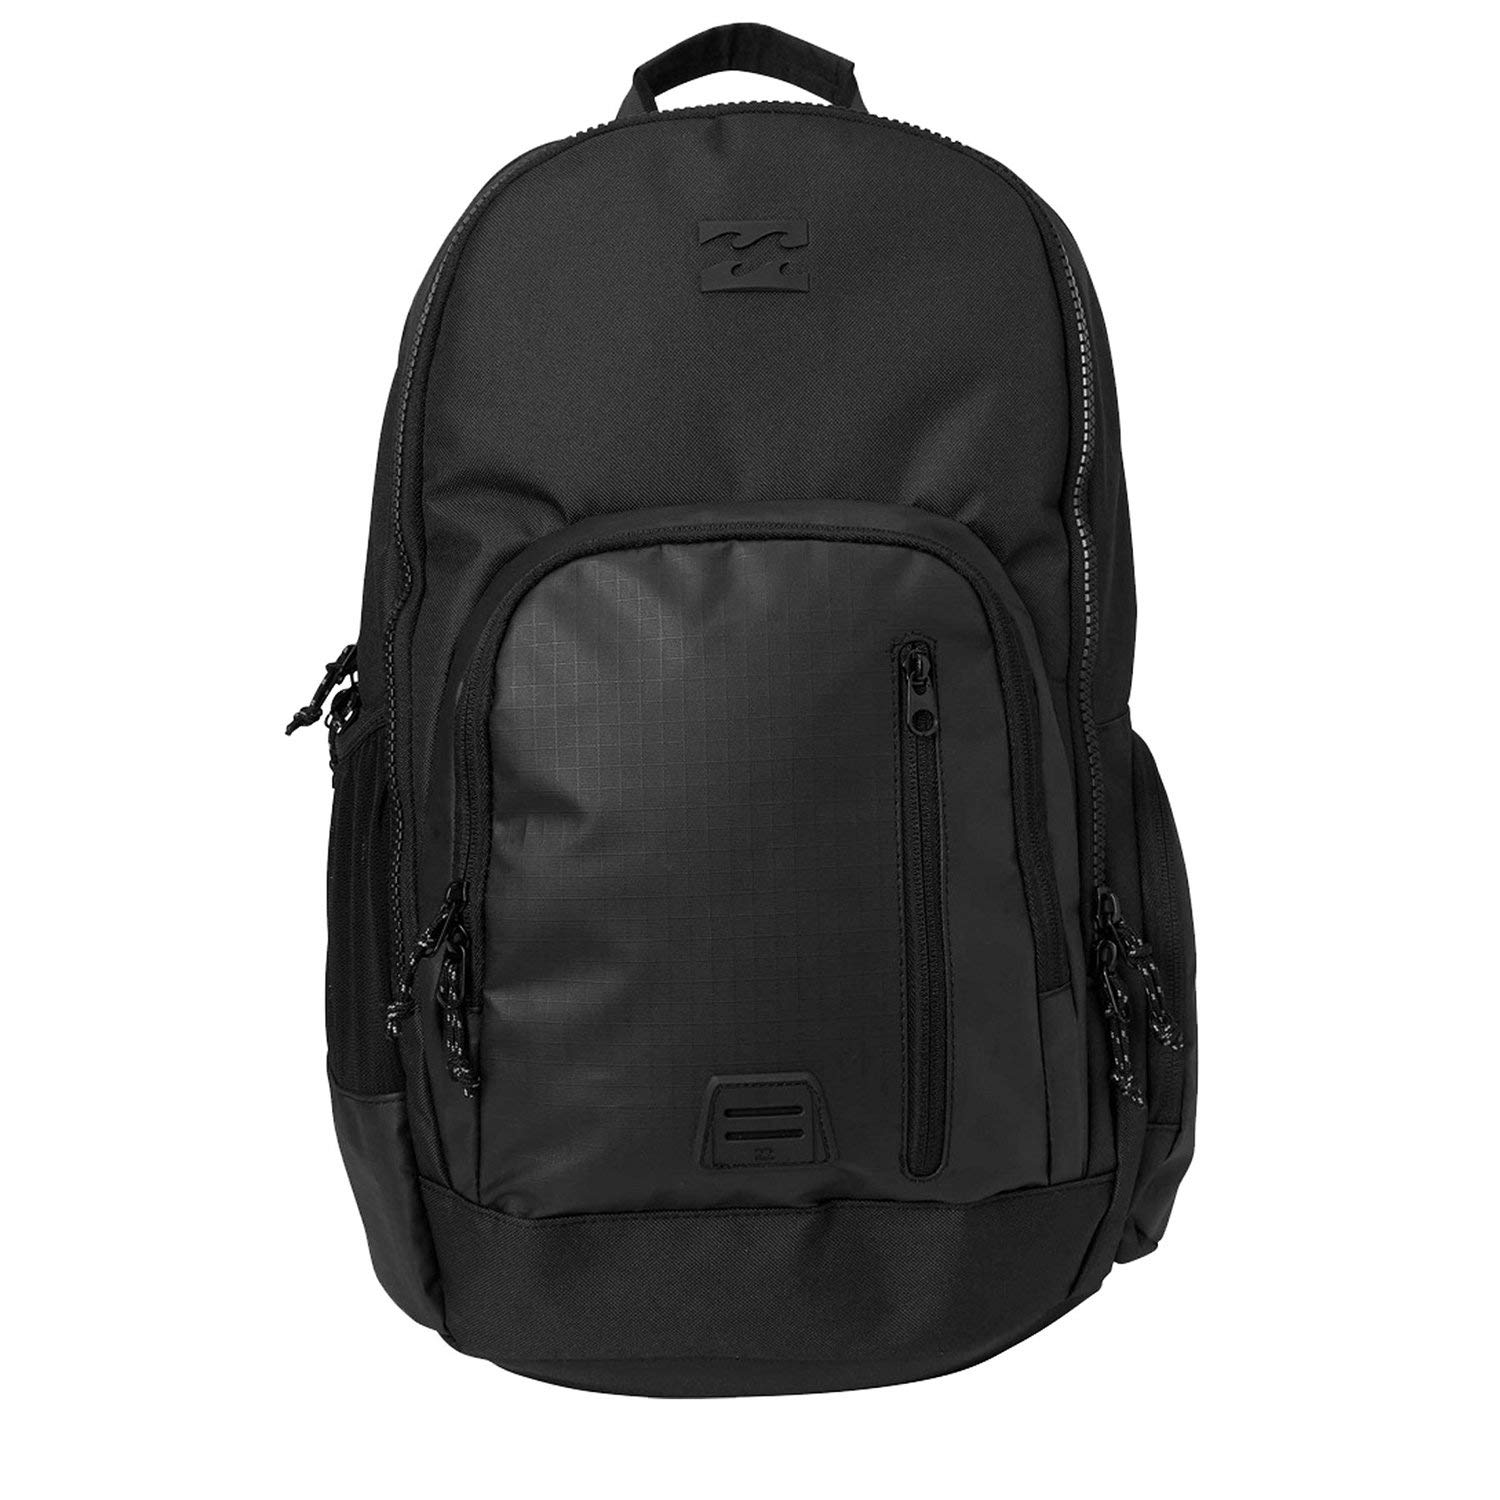 BILLABONG Command Back Pack, Hombre, Stealth, Talla Única: Amazon.es: Deportes y aire libre